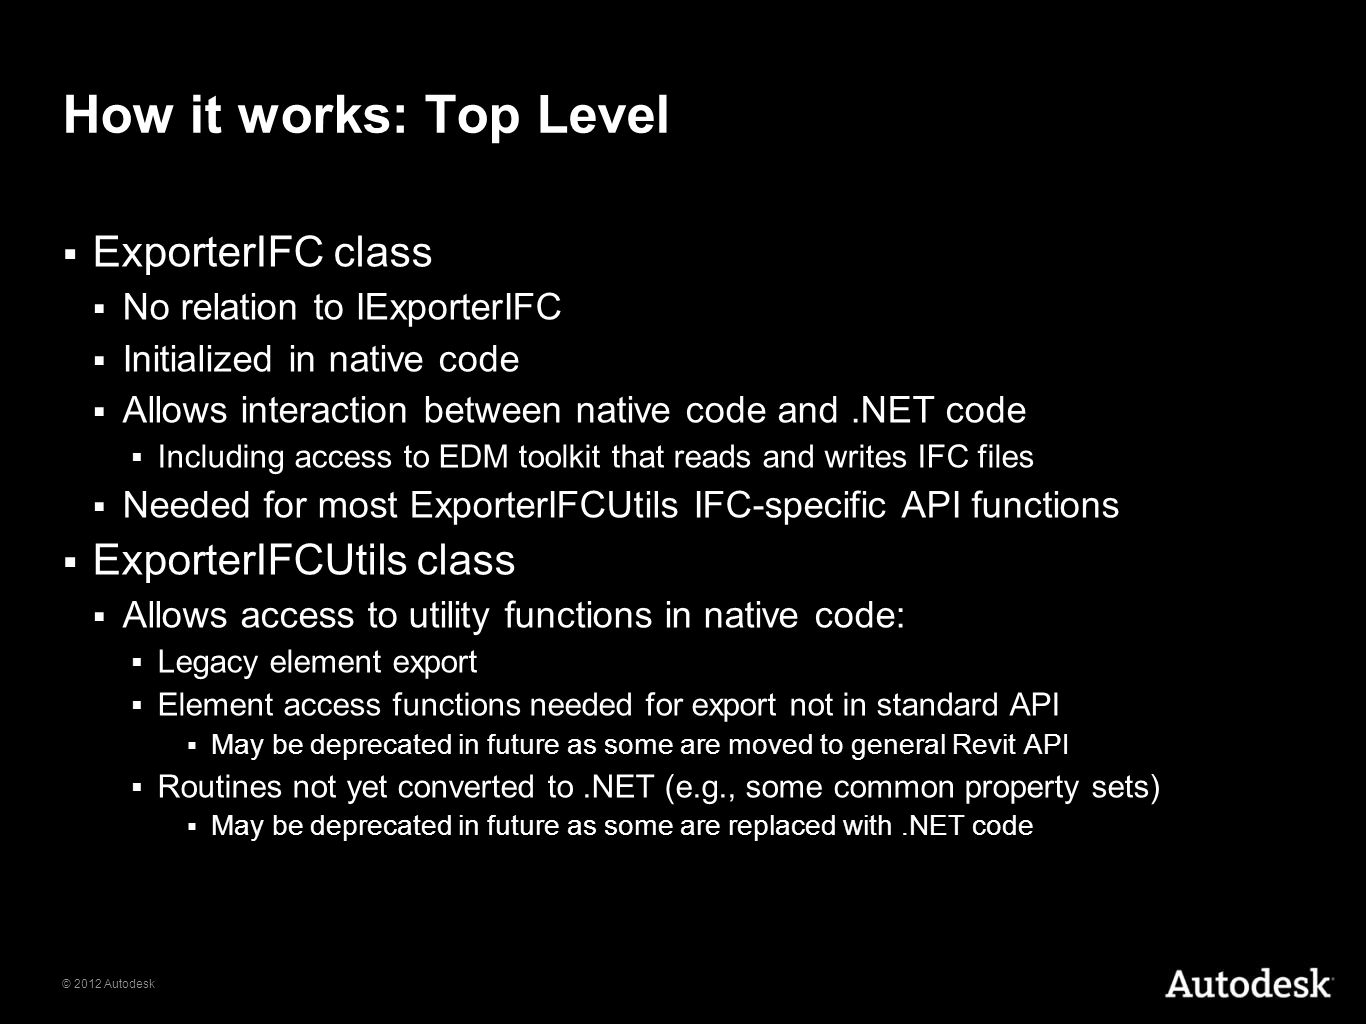 © 2012 Autodesk How it works: Top Level ExporterIFC class No relation to IExporterIFC Initialized in native code Allows interaction between native cod